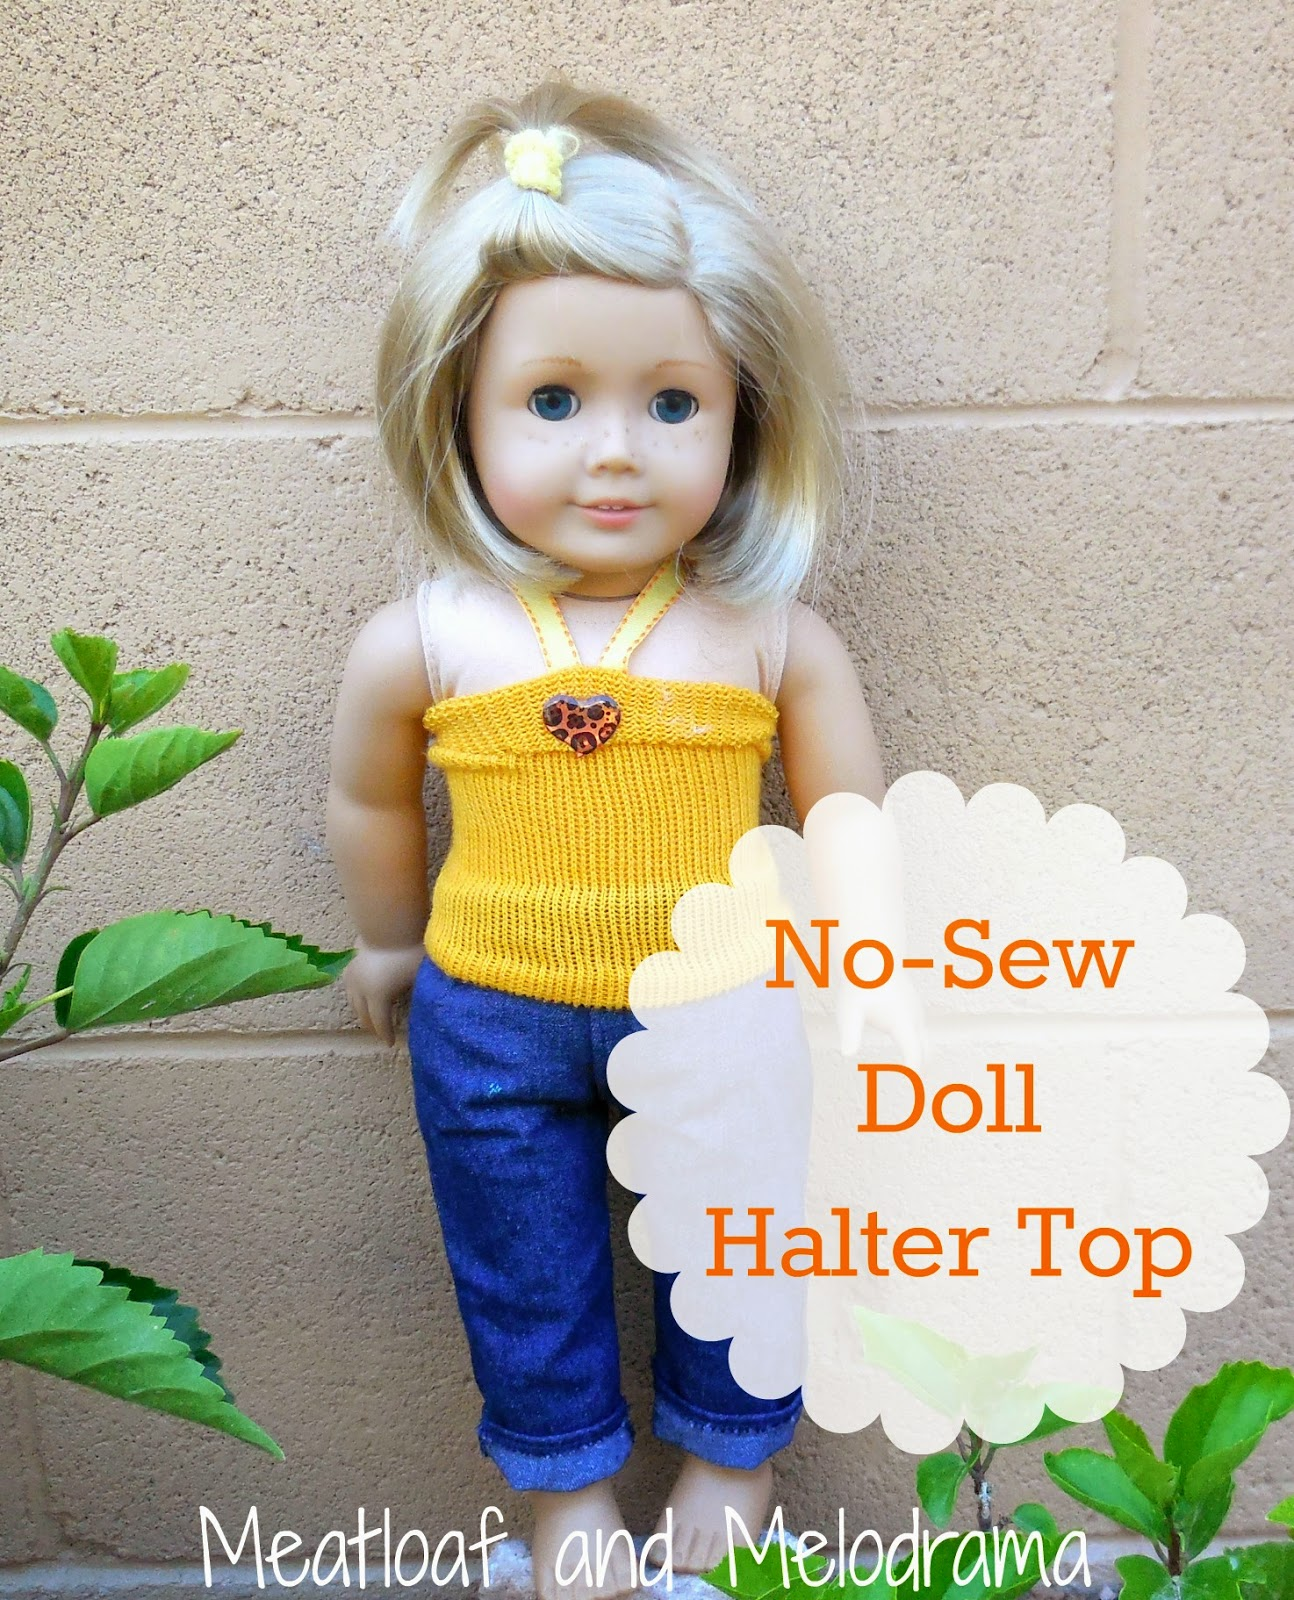 no sew doll halter top made from a yellow sock